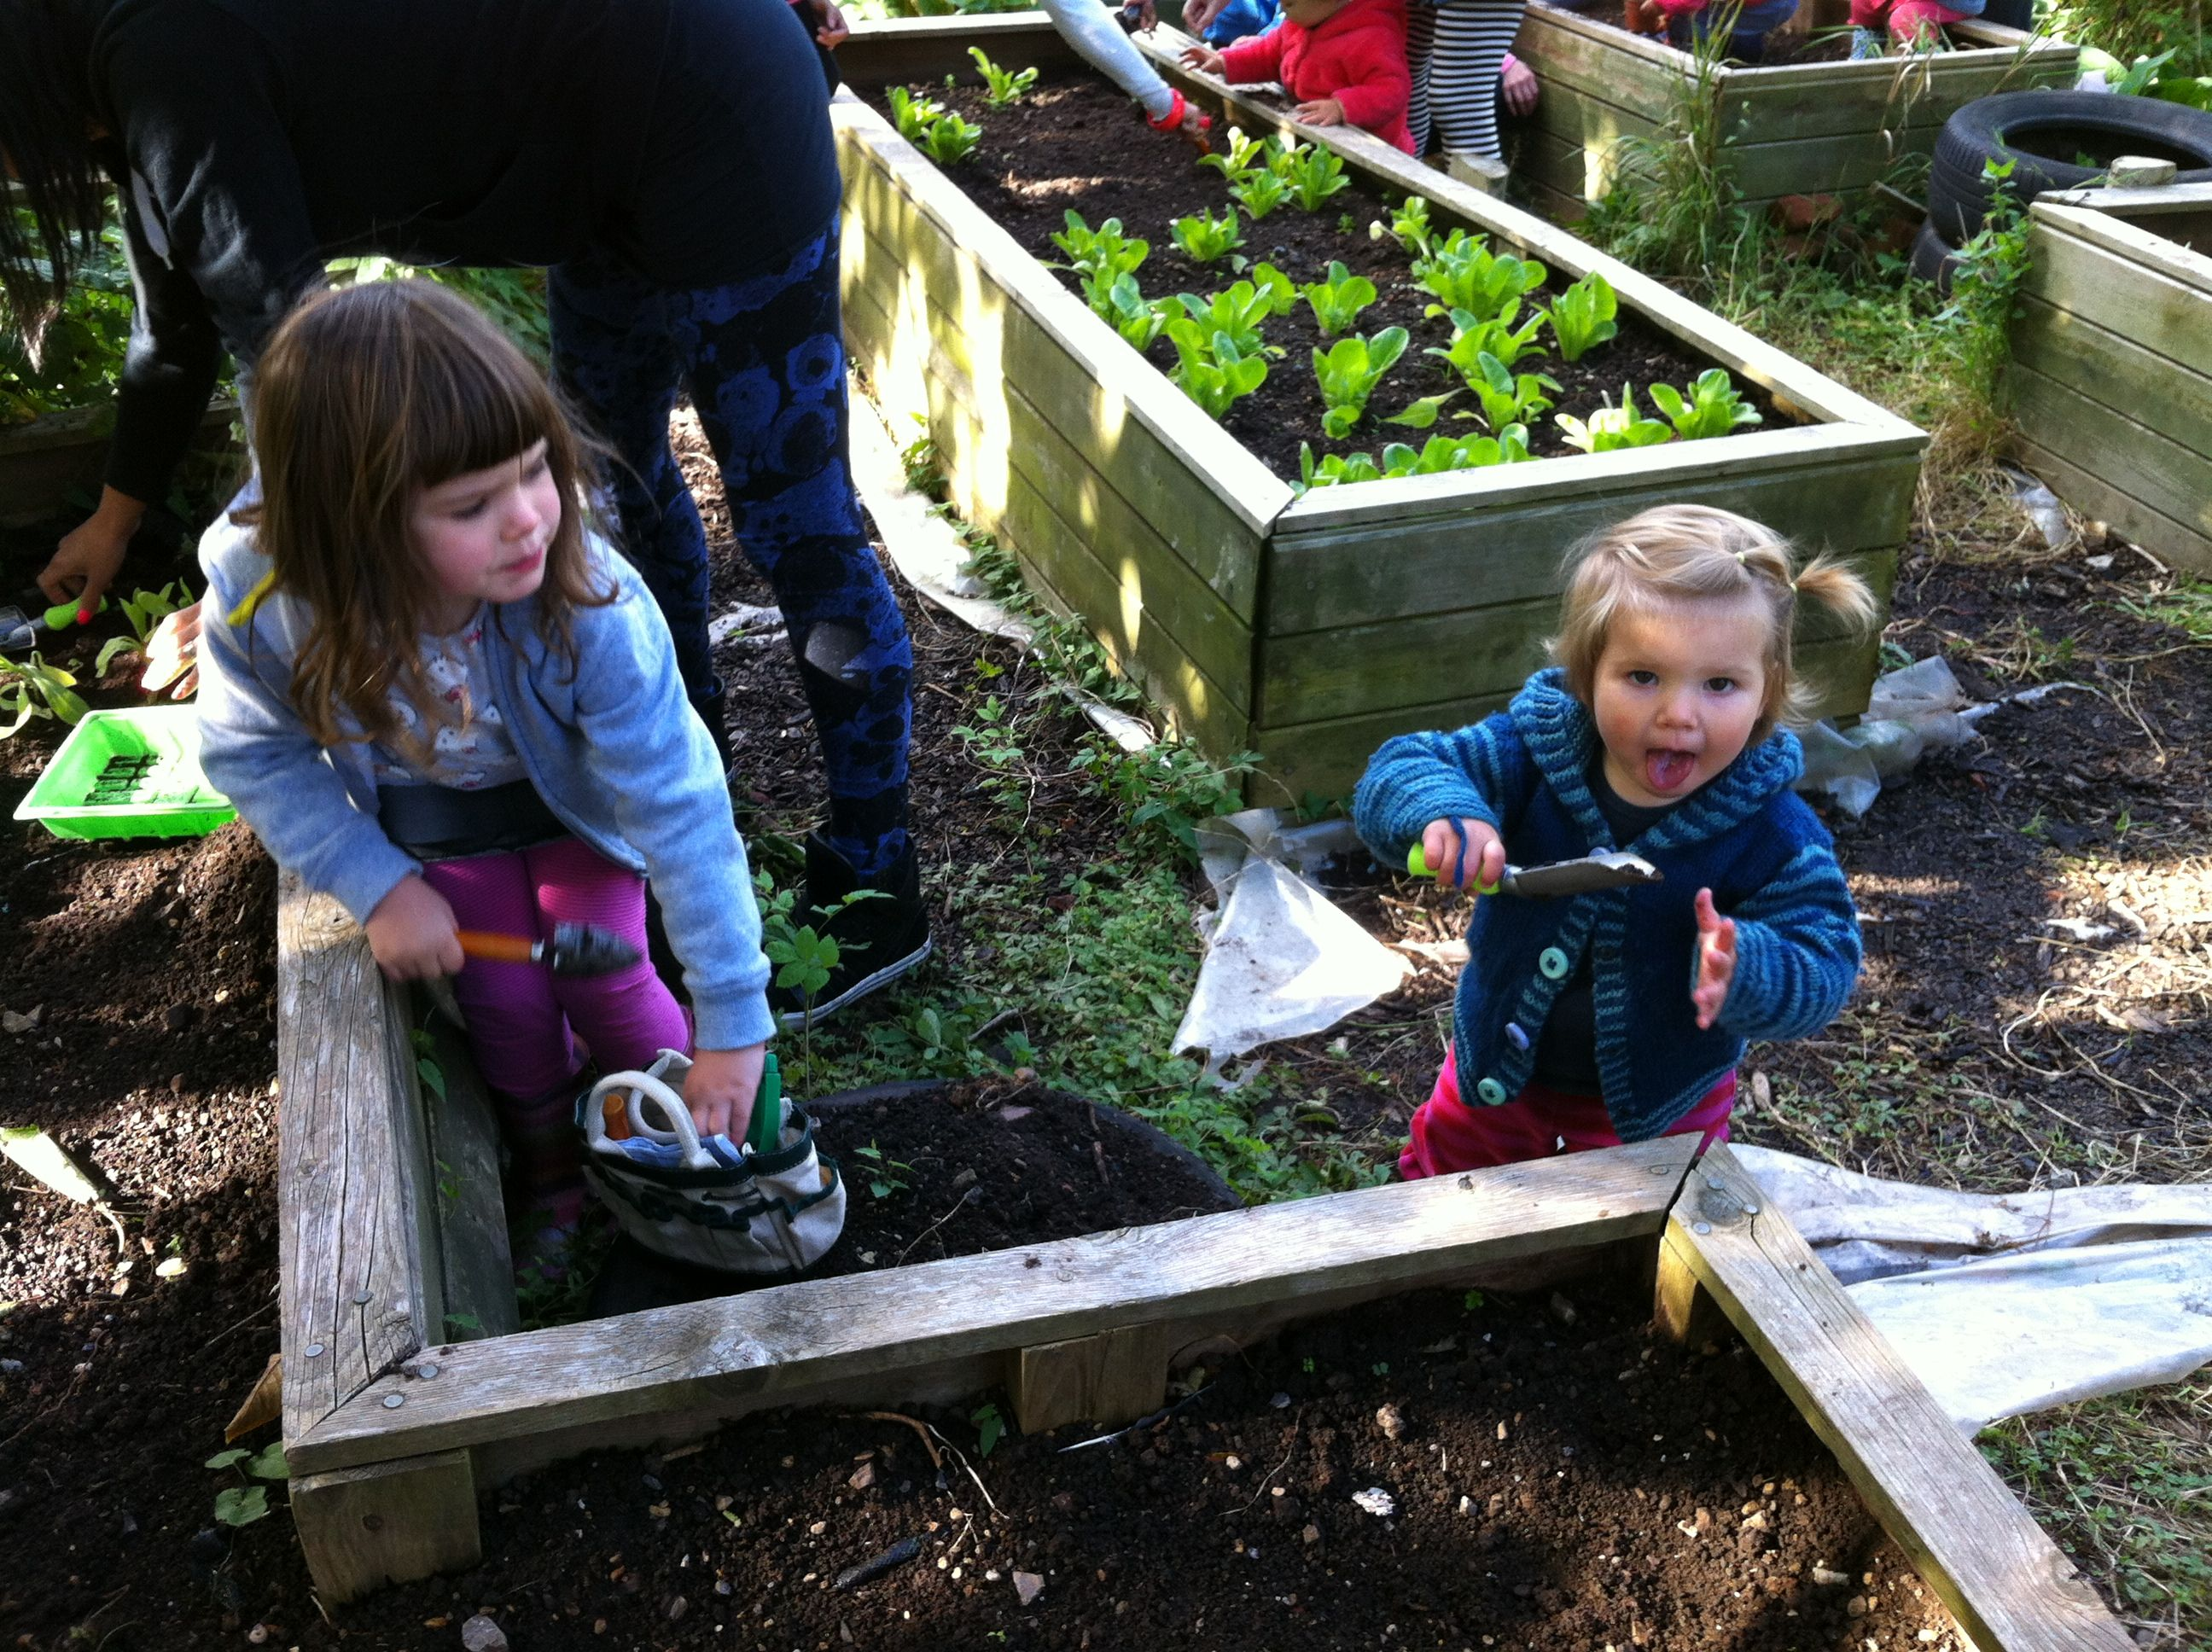 Why do children need to learn gardening